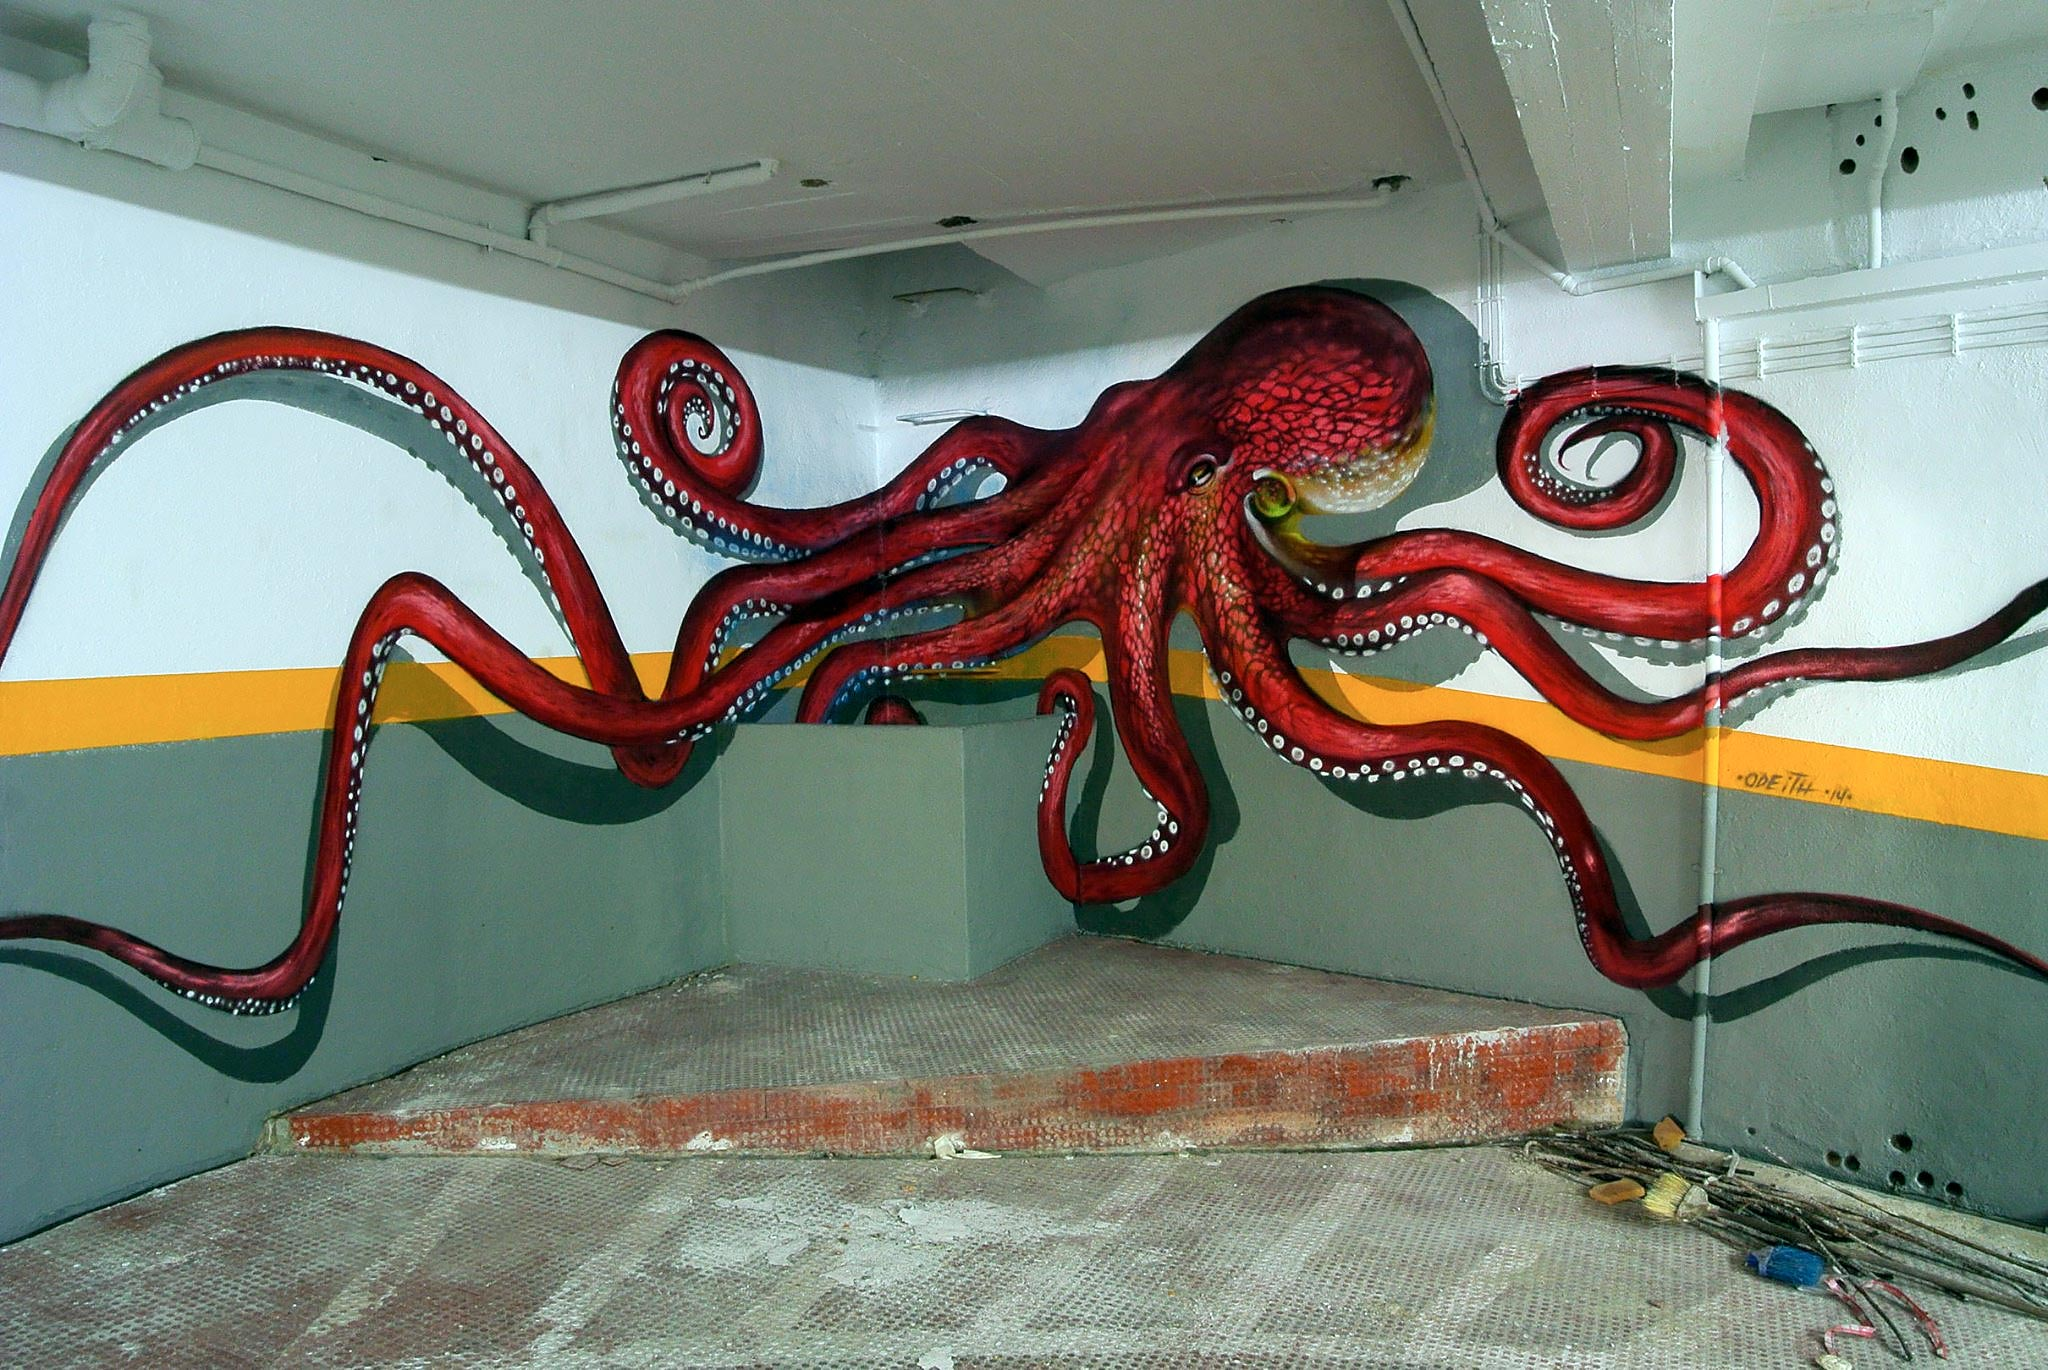 Octopus by Odeith